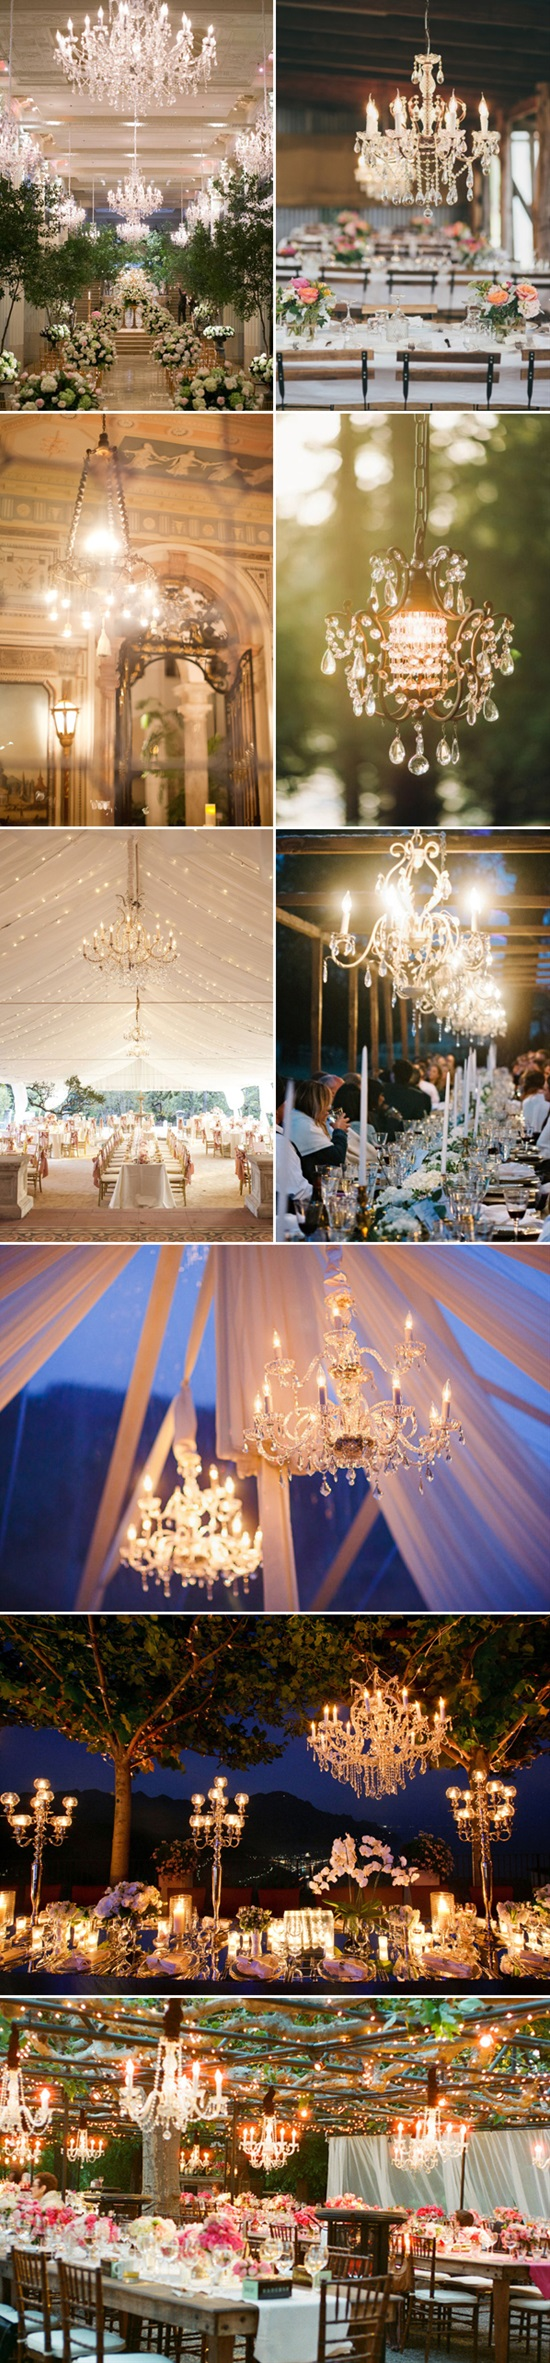 chandelier for elegant wedding concept